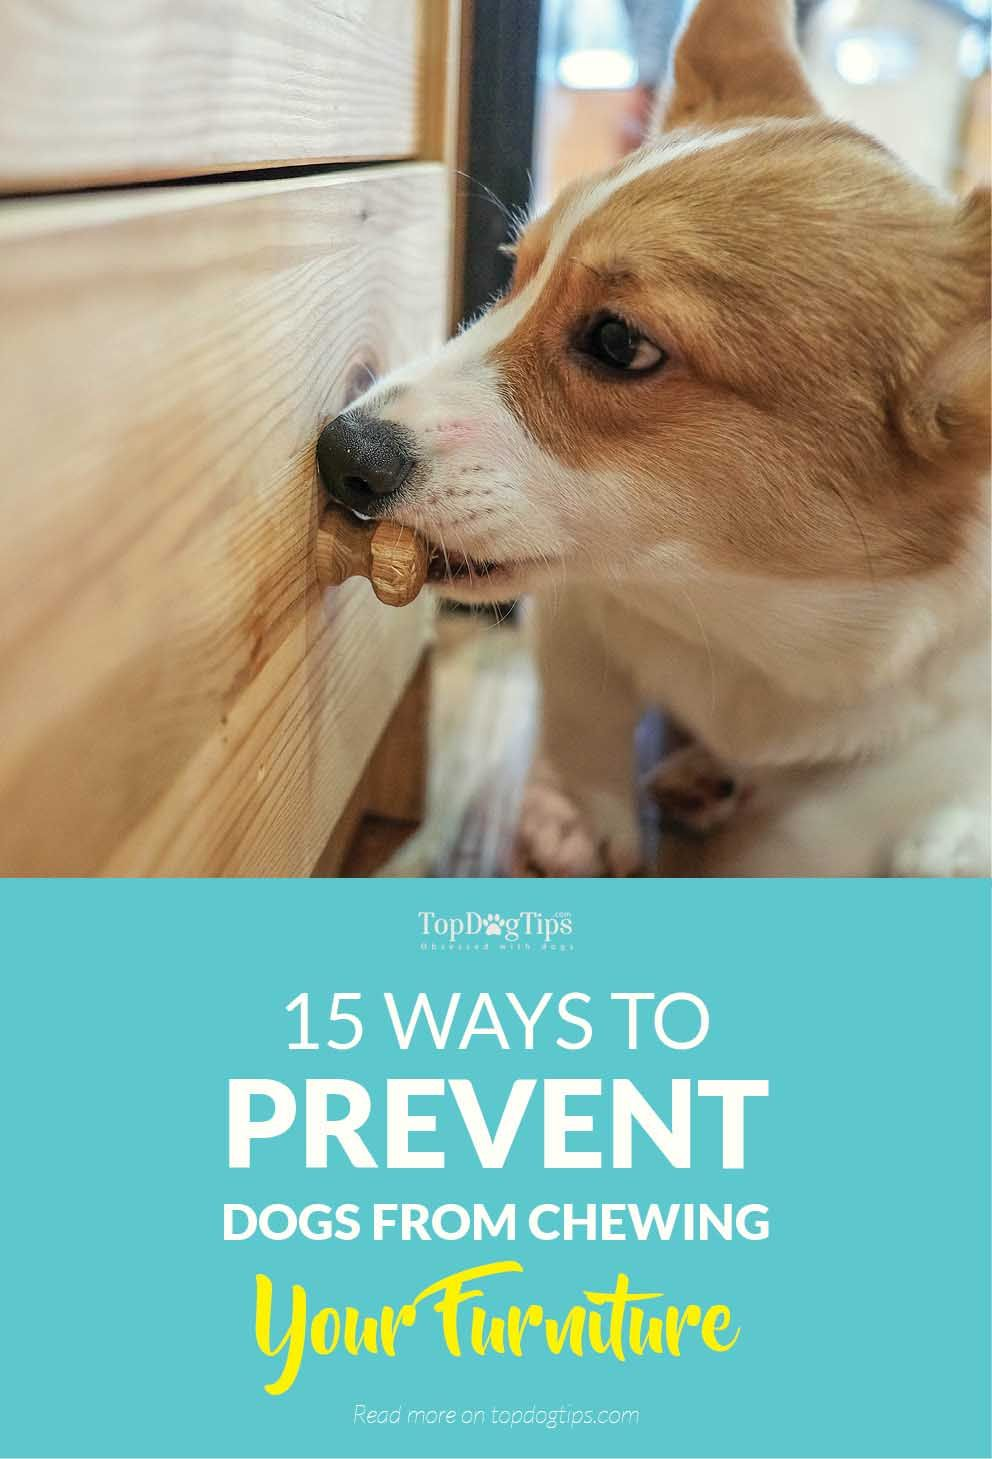 15 Ways To Prevent Dogs From Chewing Furniture And Belongings We